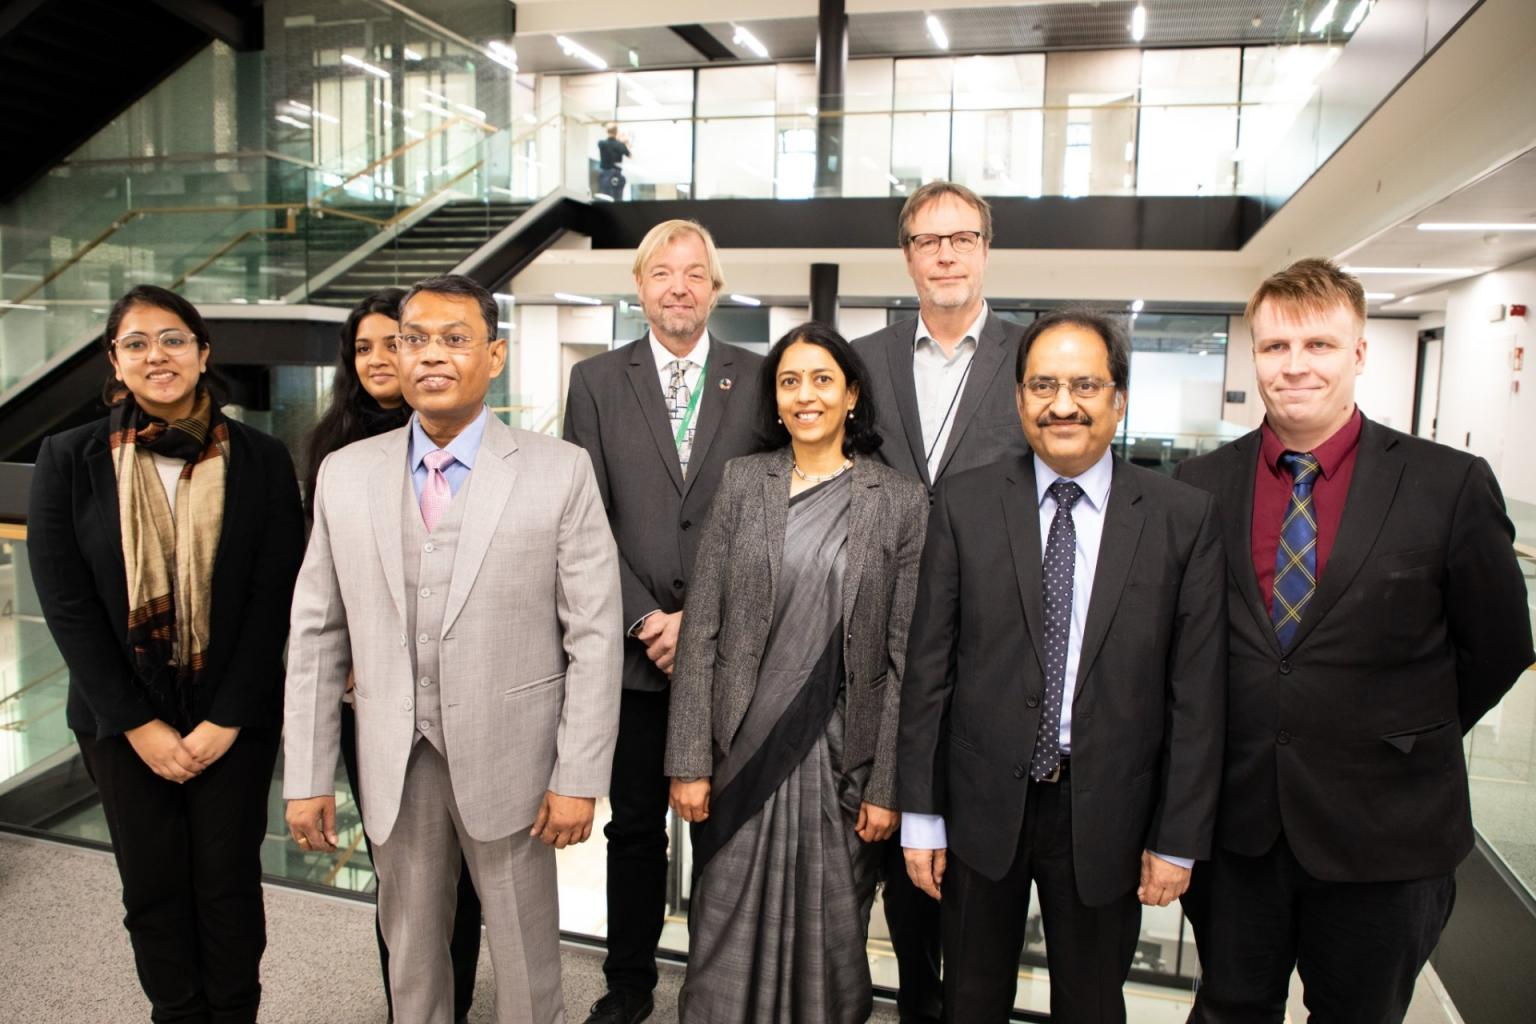 Ms. Akshaya and Ms. Smrithi were part of the Indian delegation in the Helsinki meeting